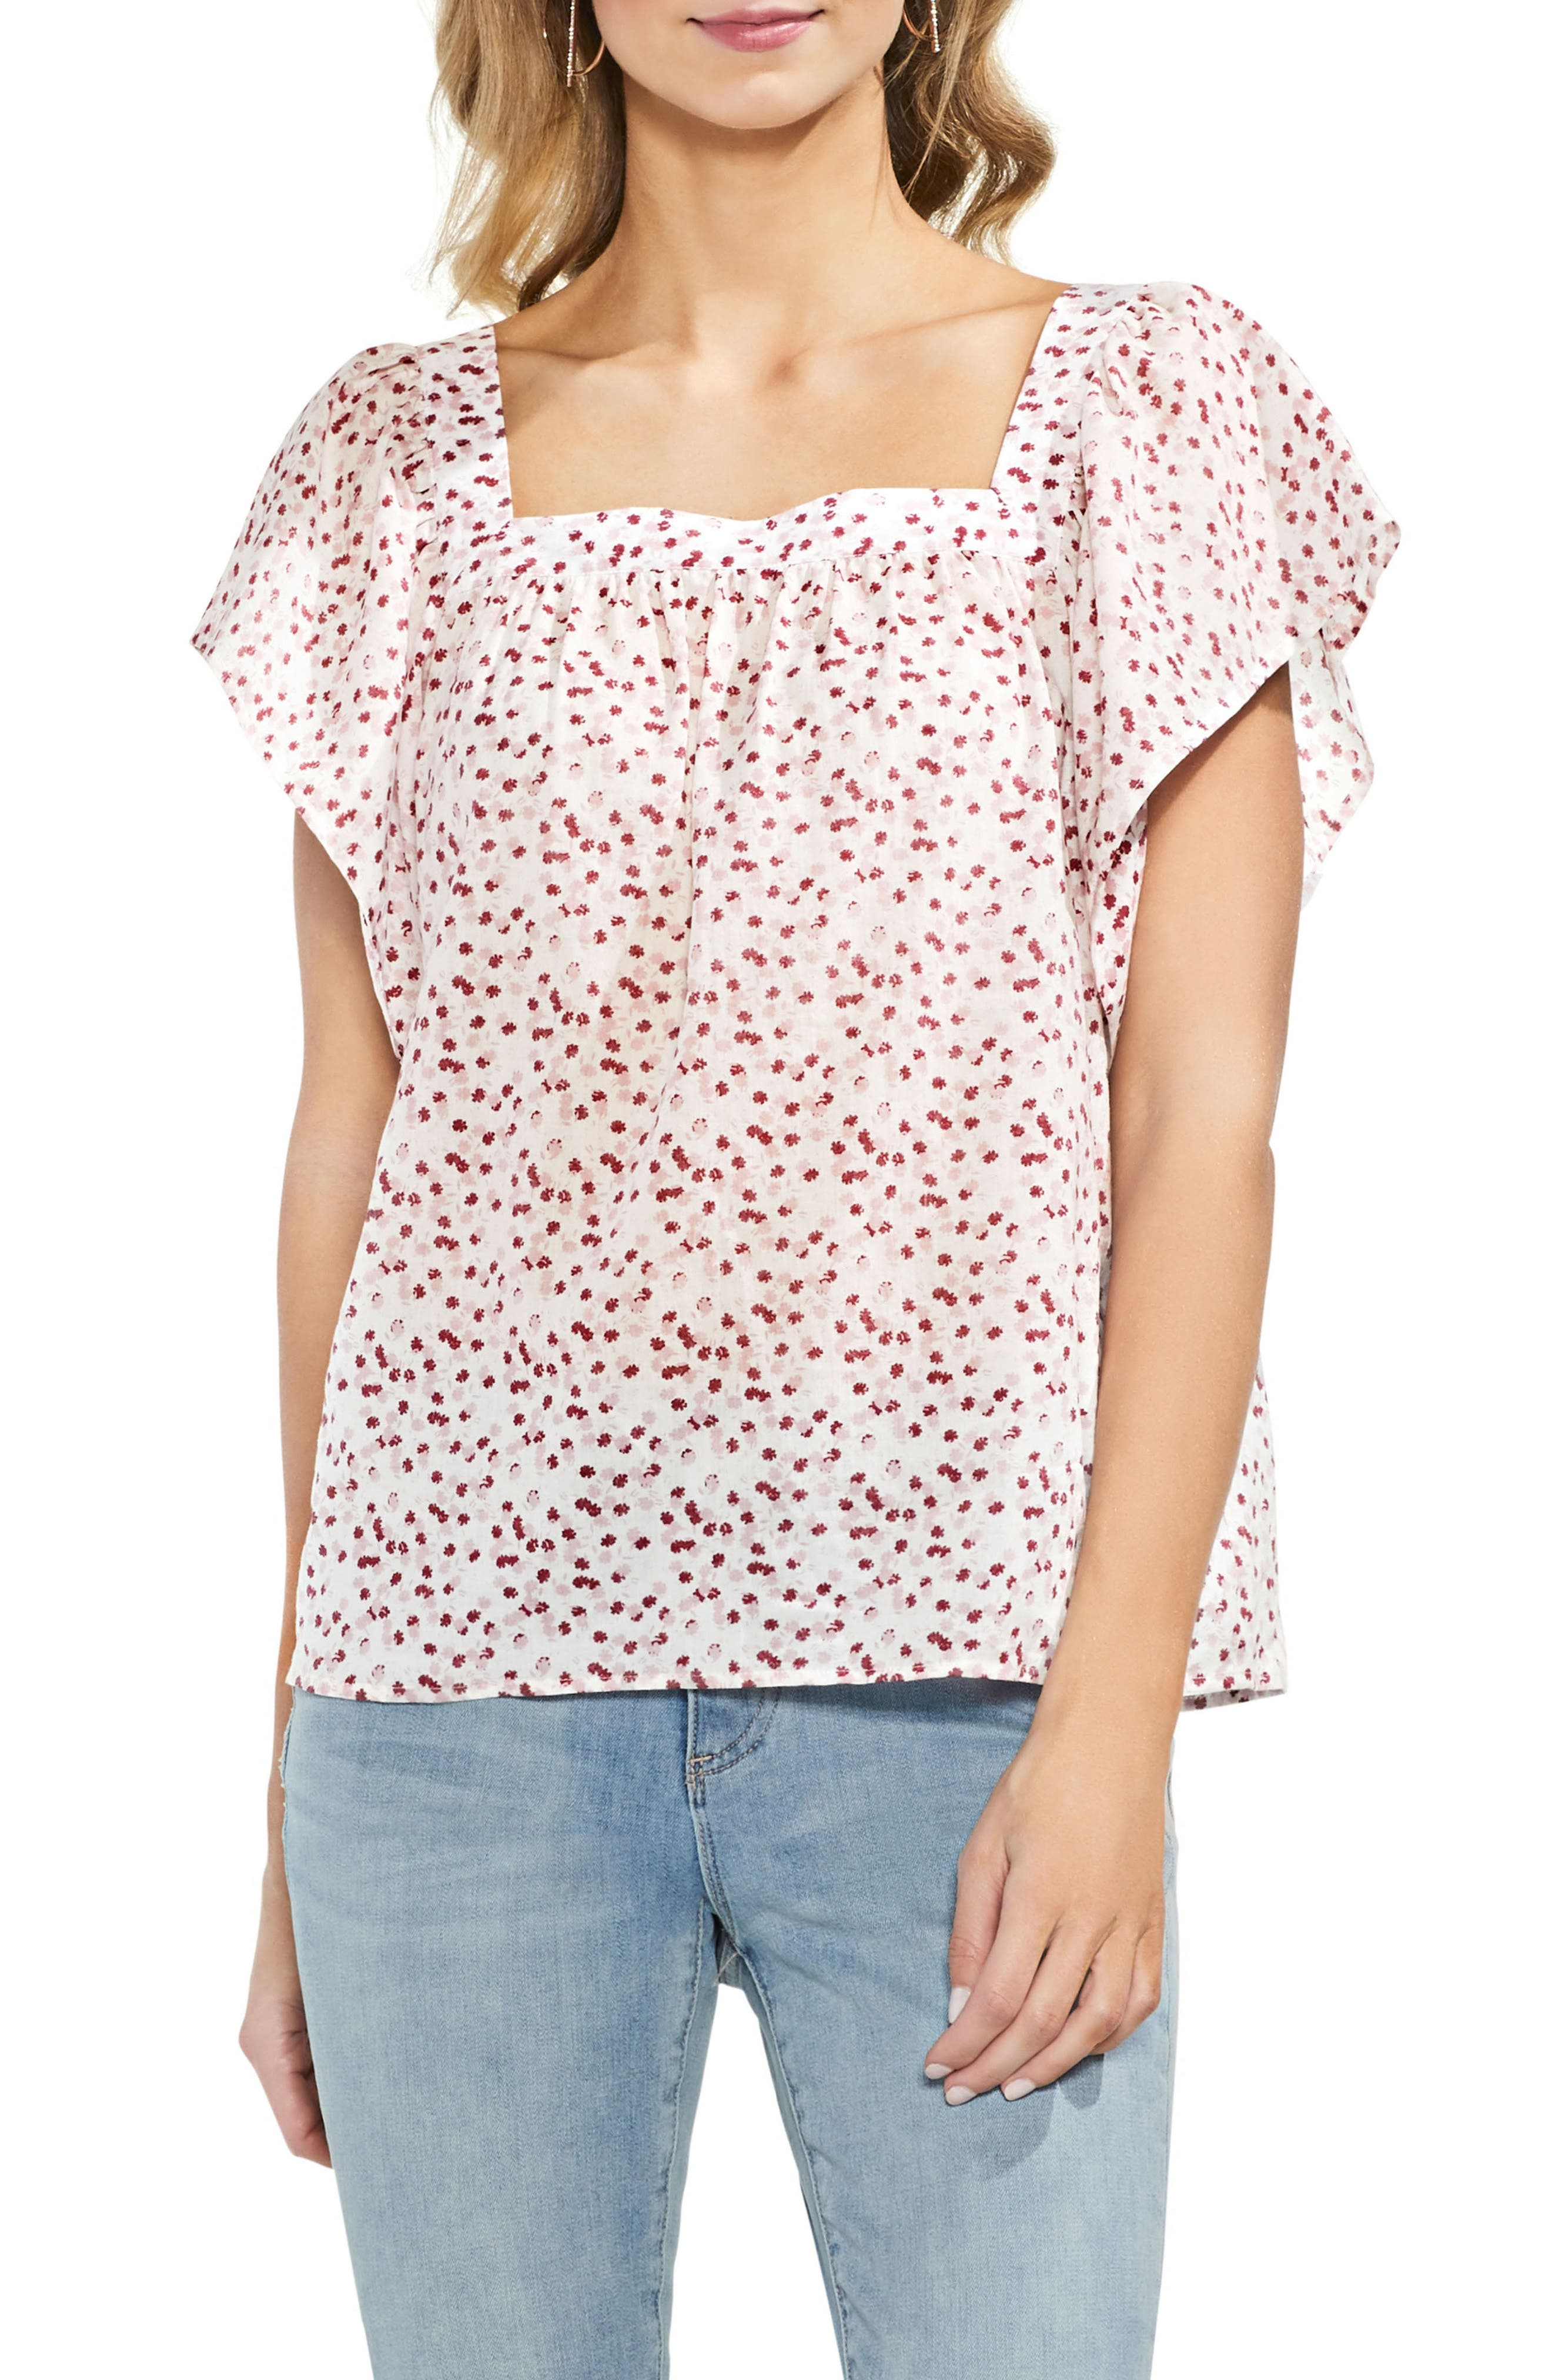 Floral Print Blouse,                             Main thumbnail 1, color,                             103